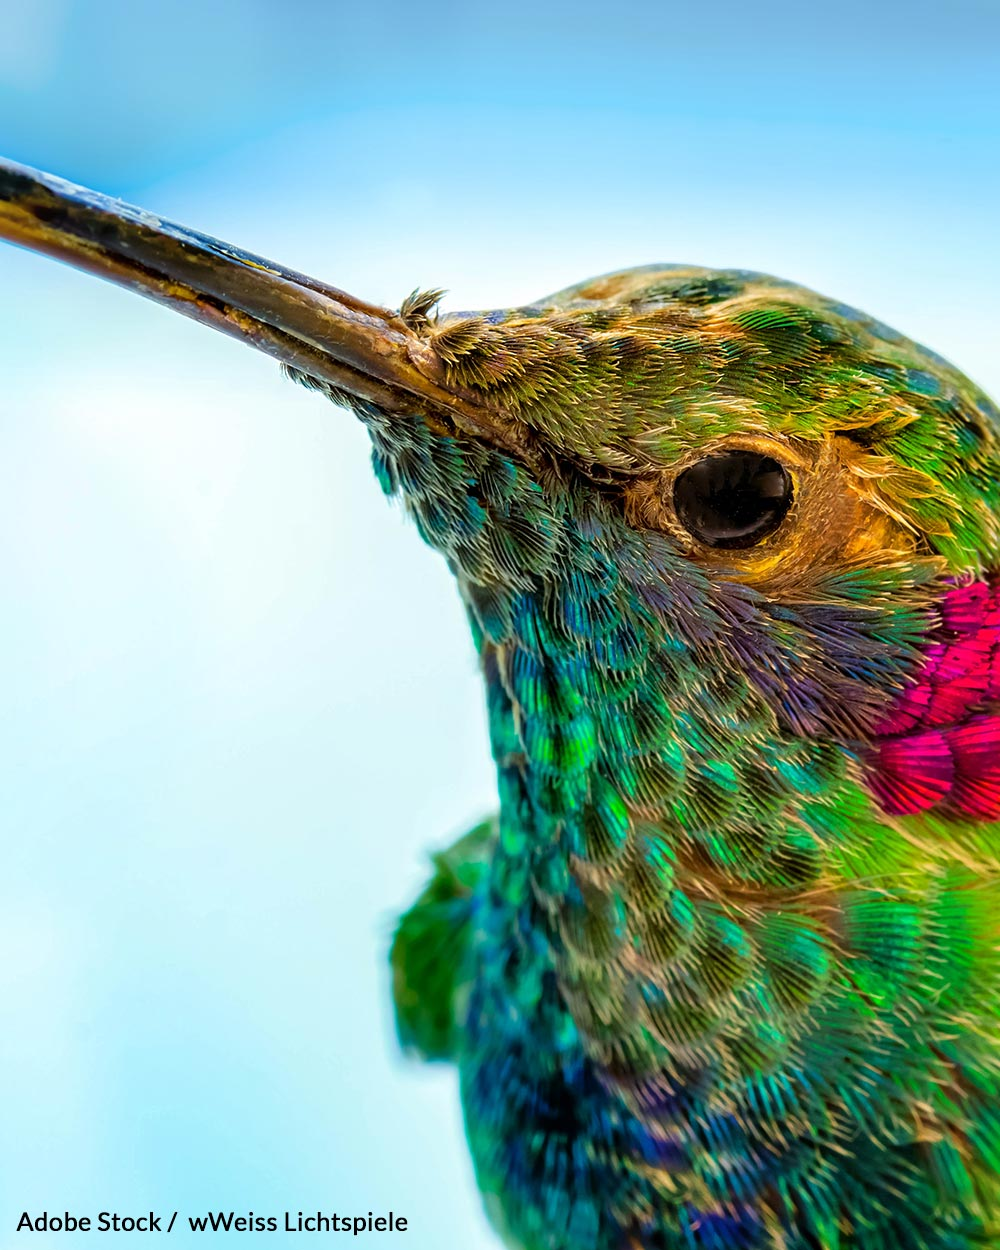 Worldwide, about 10% of all hummingbirds are facing extinction.